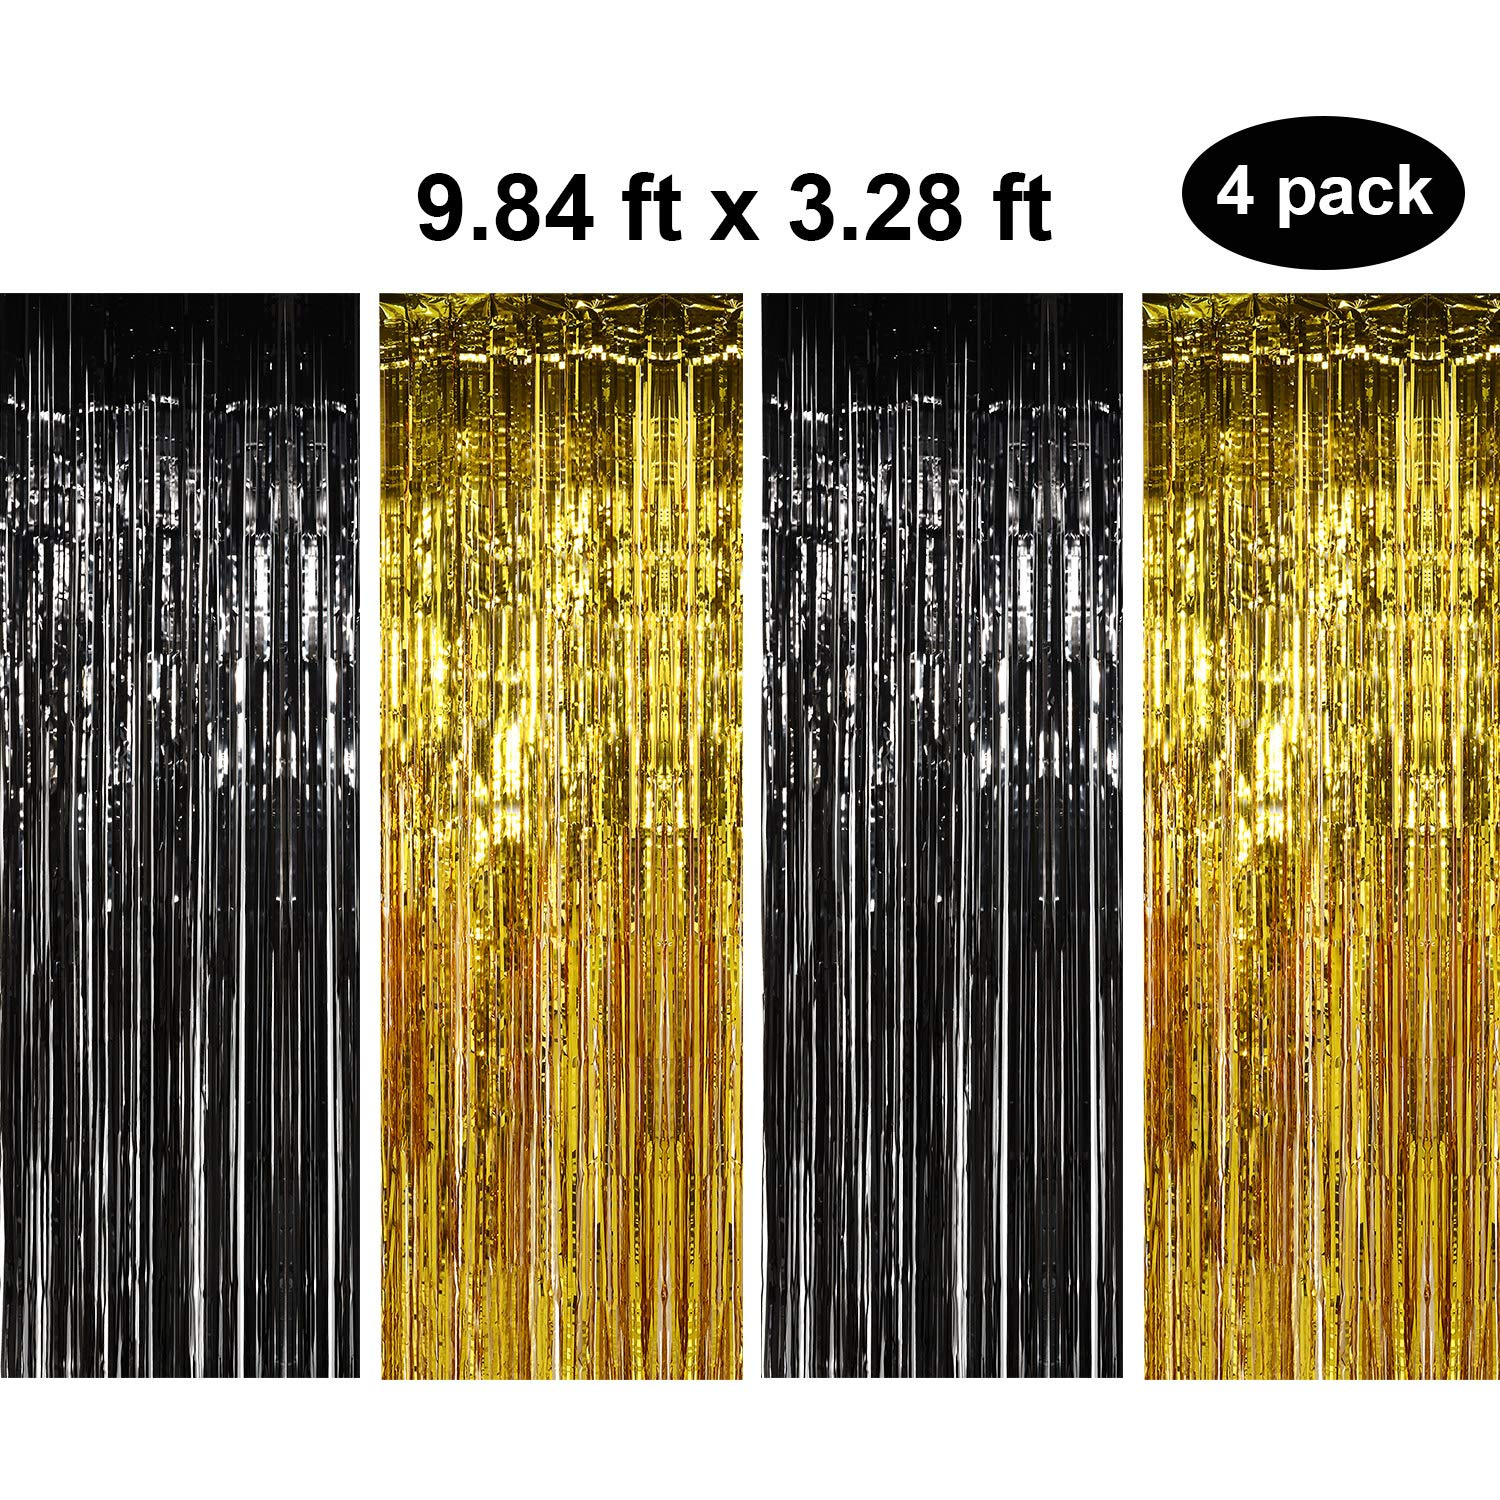 4 Packs 3.28 x 9.84 Feet Metallic Fringe Curtains Door Foil Curtains Metallic Curtains Party Tinsel Curtains for Photo Backdrops Party Decorations (Gold and Black)